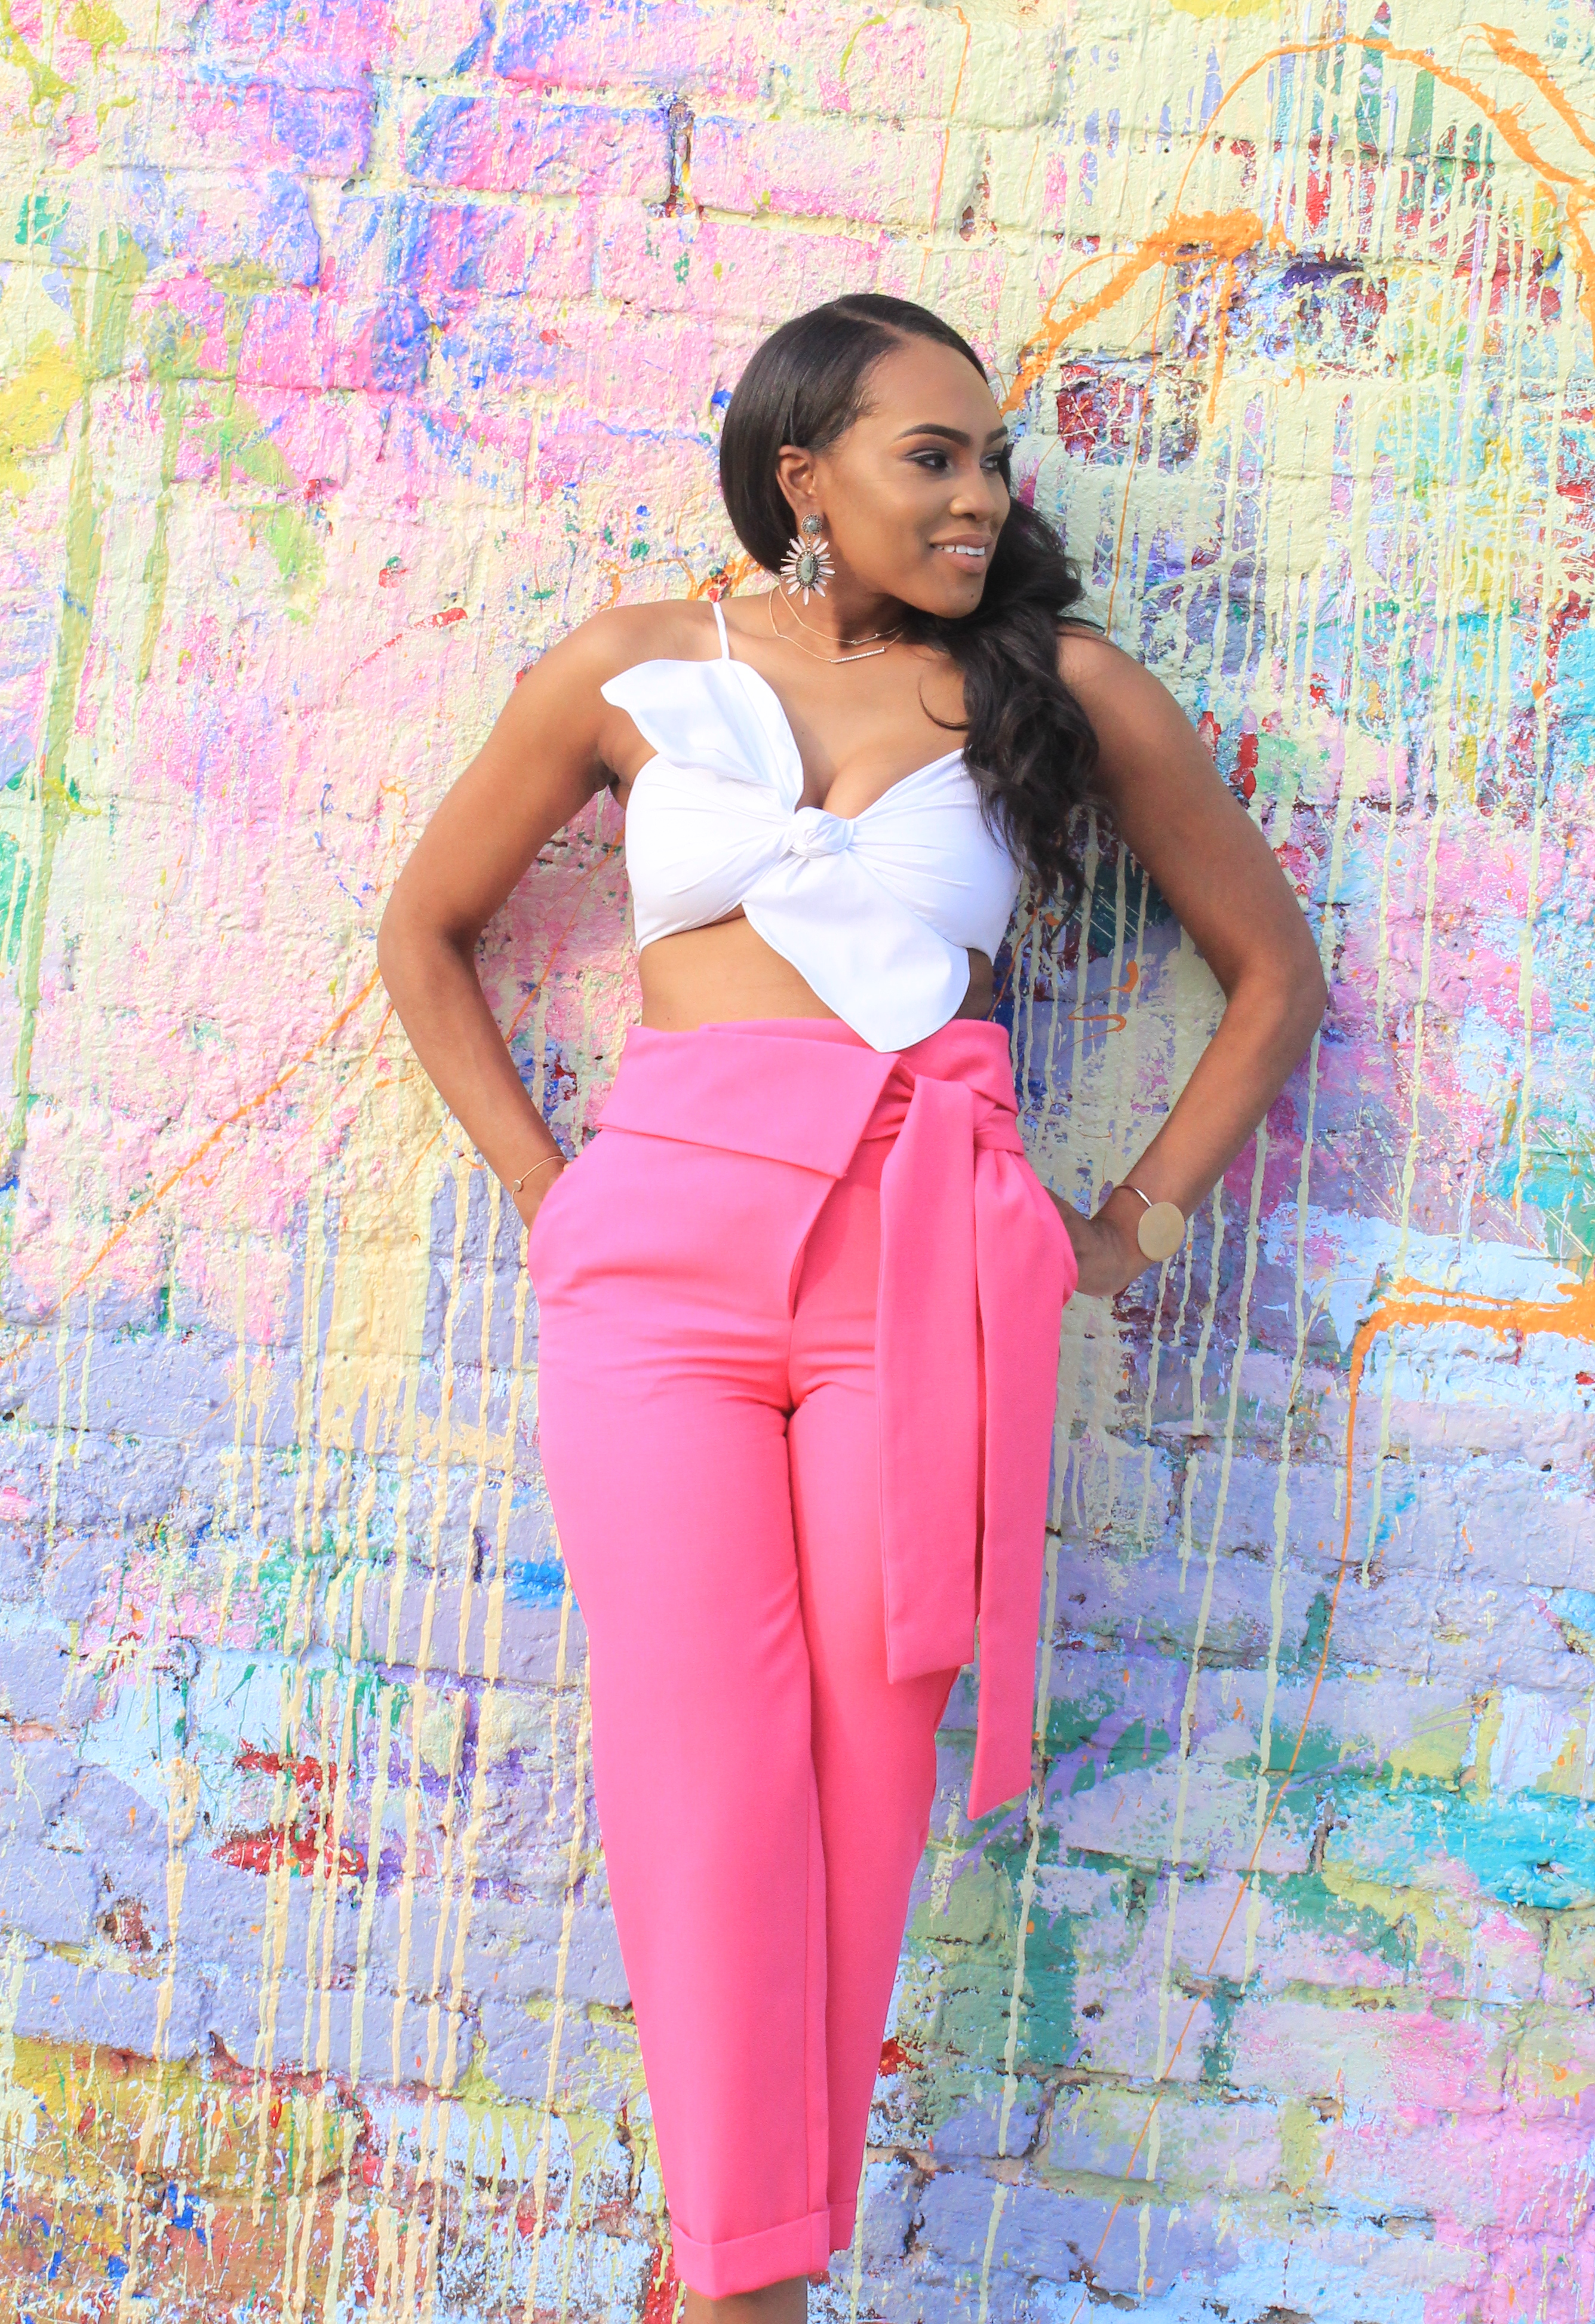 Style files-Hot-pink-asos-pants-with-origami-waist-tie-detail-truffle-collection-barely-there-heel-sandal-rose-gold-forever-21-contemporary-white-cropt-top-perfect-summer-pants-top-birmingham-bloggers-oohlalablog-2